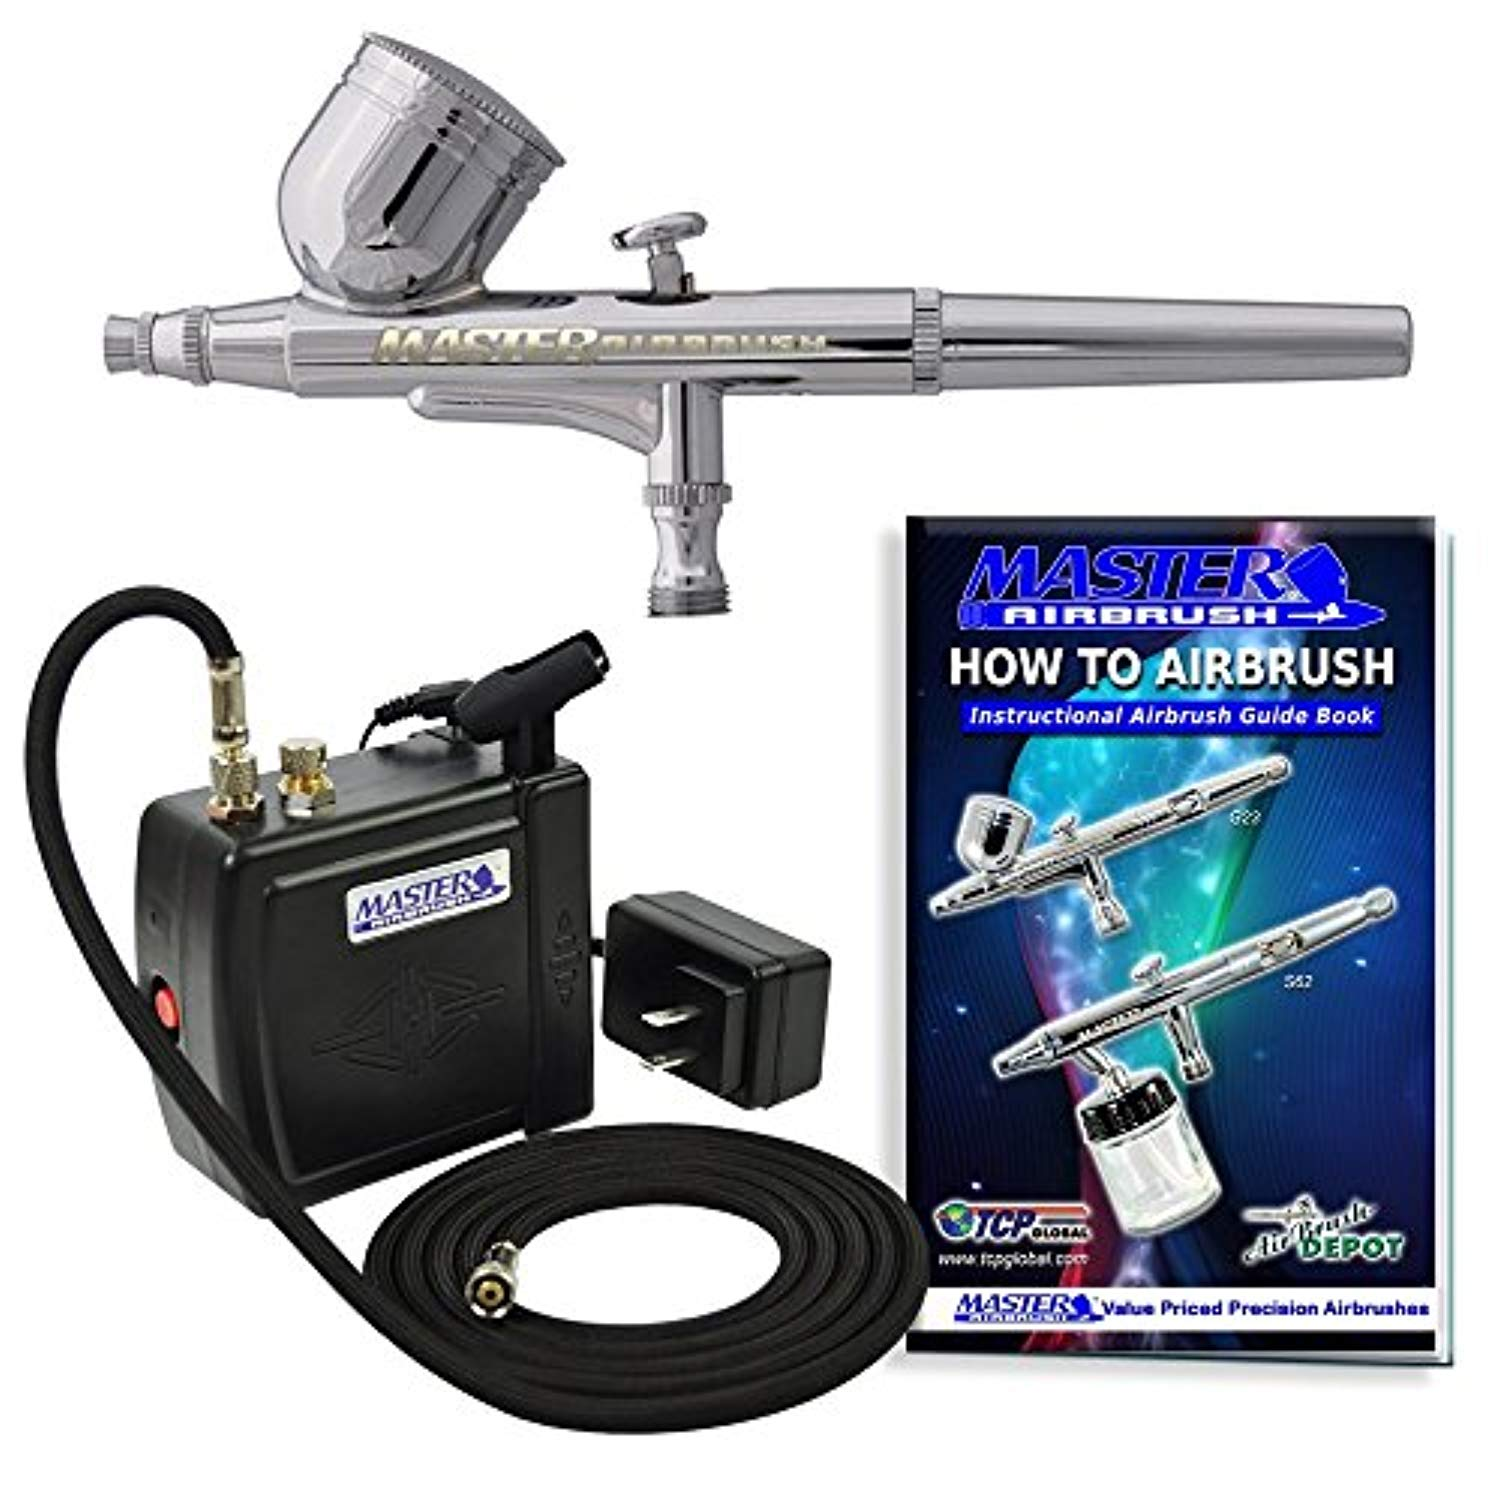 Multi-Purpose Airbrushing System Kit with Portable Mini Air Compressor - Gravity Feed Dual-Action Airbrush, Hose